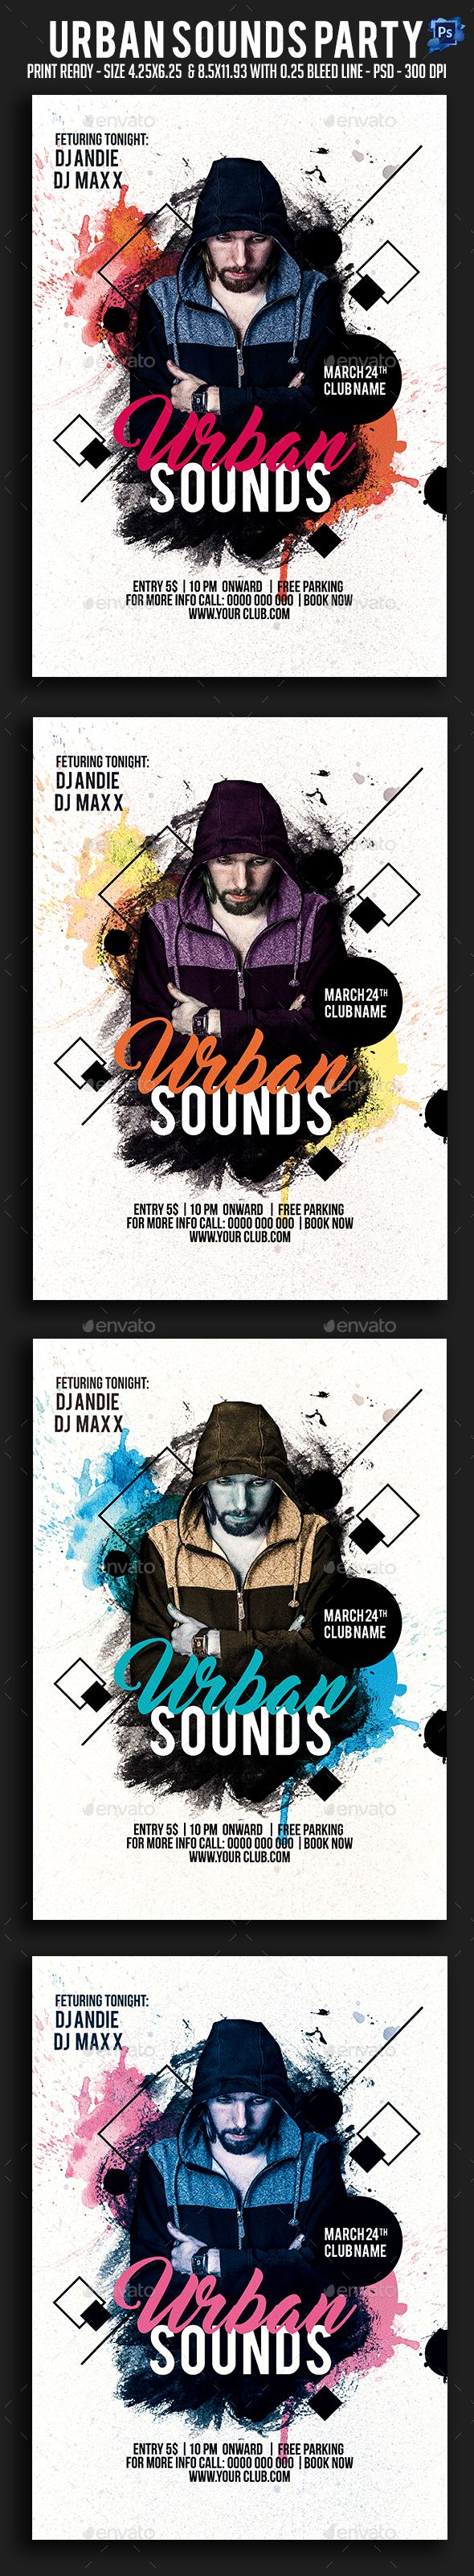 5s poster design - Urban Sounds Party Flyer